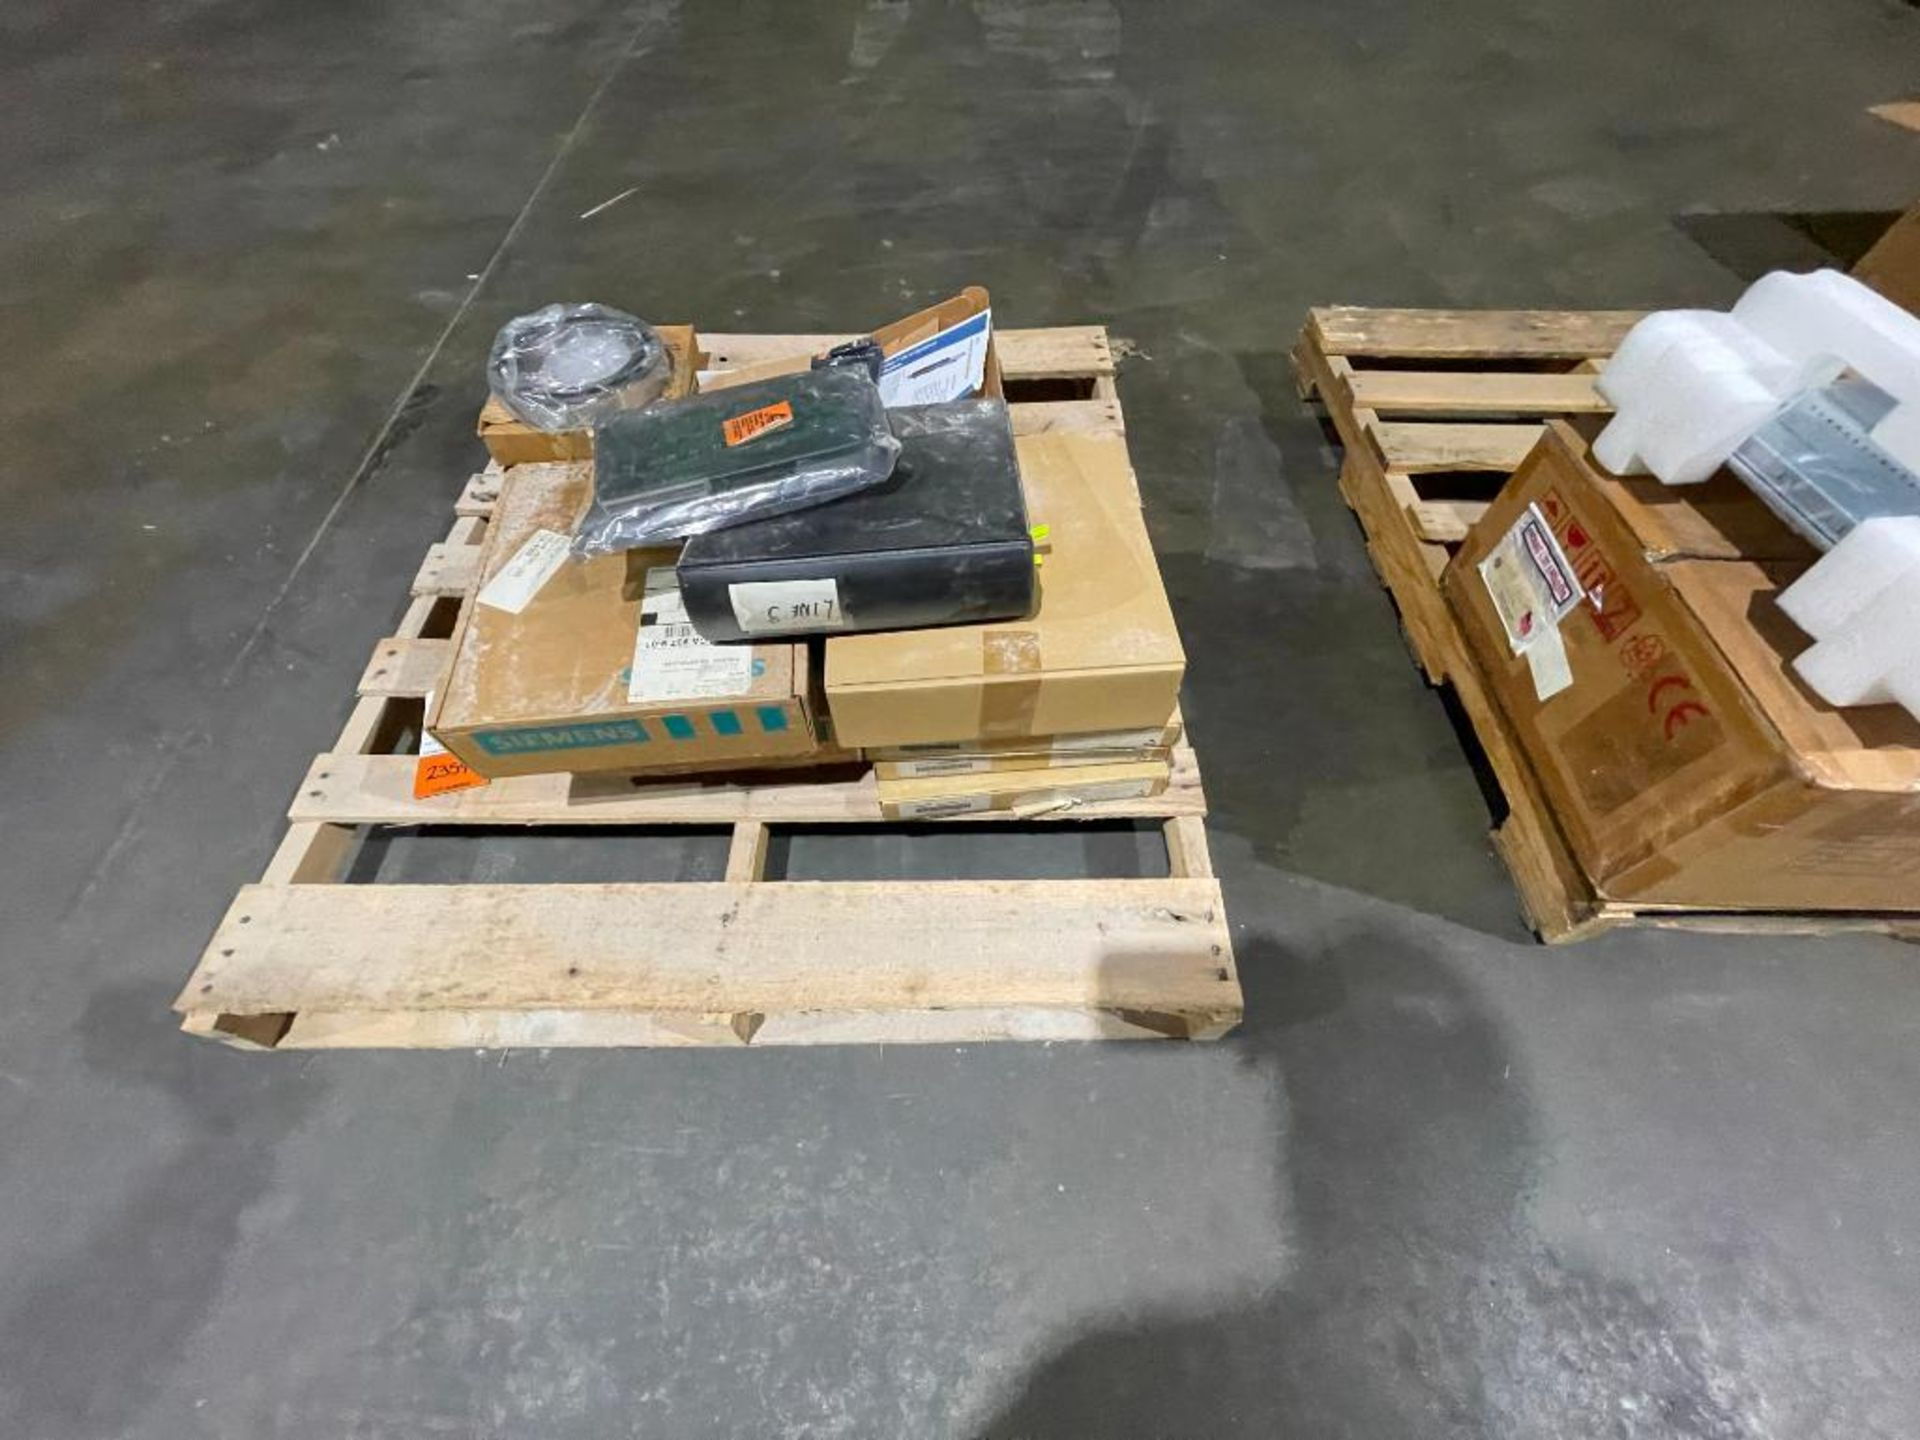 pallet of Siemens components - Image 5 of 5